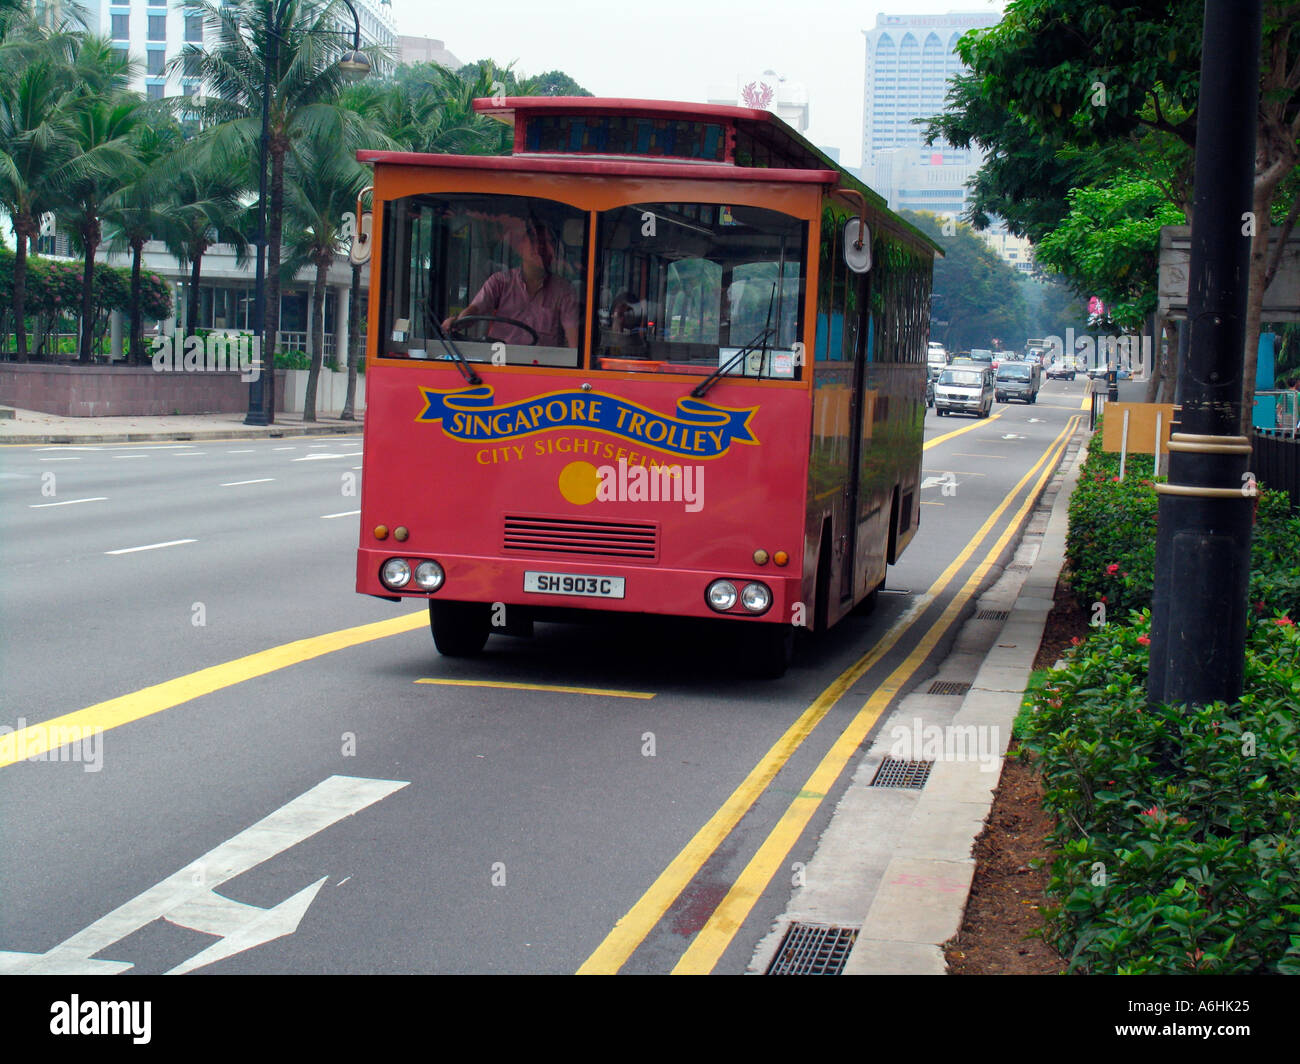 Singapore Trolley city sightseeing bus - Stock Image